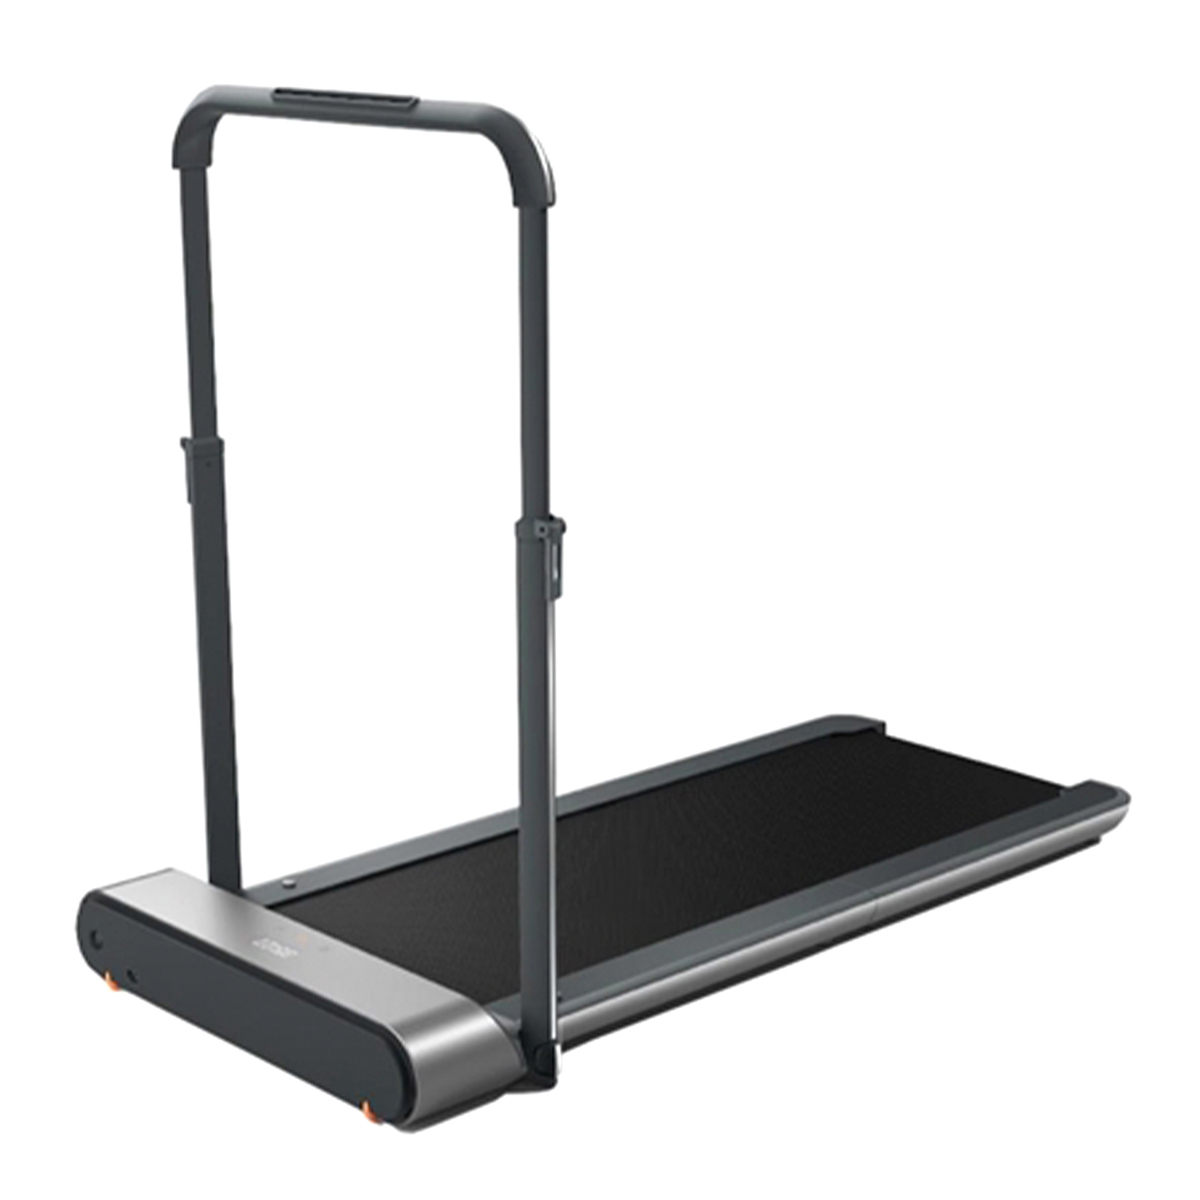 Treadmills Online Best Treadmill Price In Bangladesh 2021 Daraz Com Bd *the tickets are issued by bangladesh railway's centrally computerized seat reservation & ticketing system (ccsrts) and computer network systems. best treadmill price in bangladesh